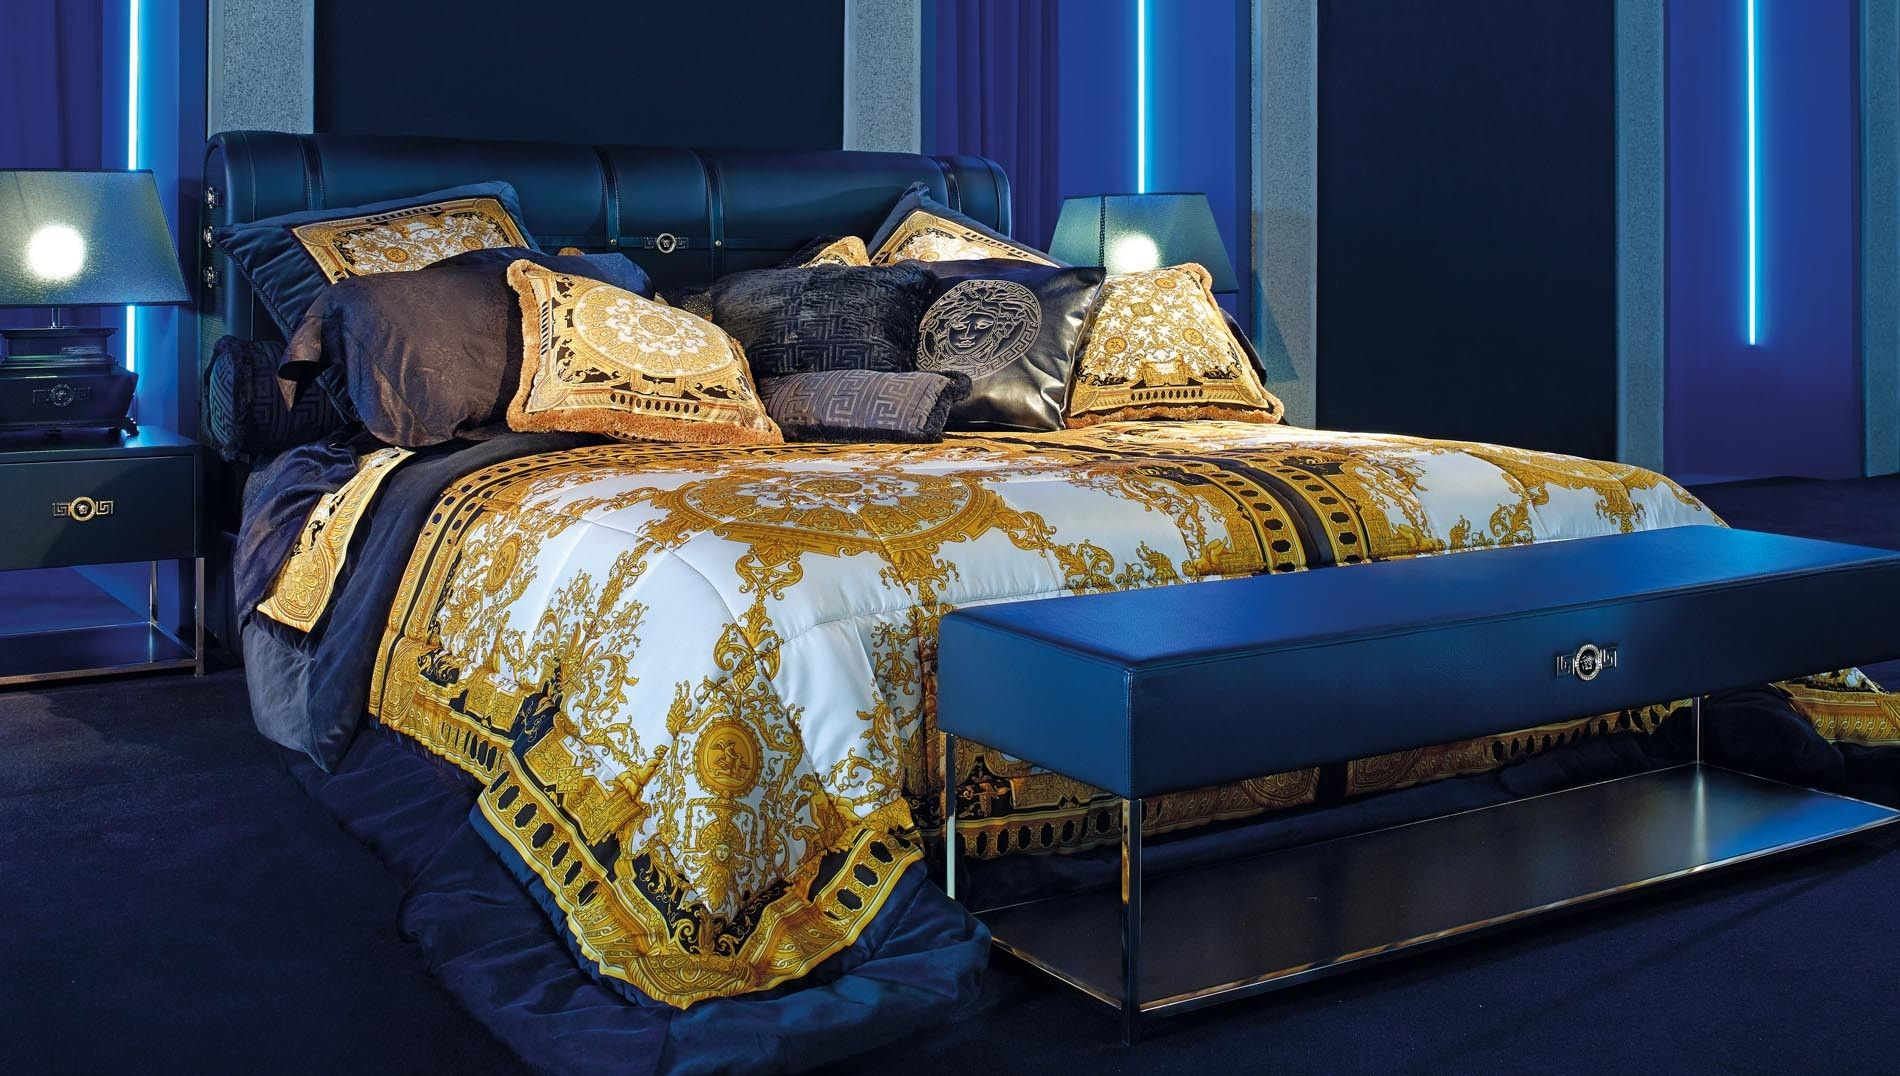 Superb Versace Furniture, Signature Silk Bedcover, Buy Online At LuxDeco